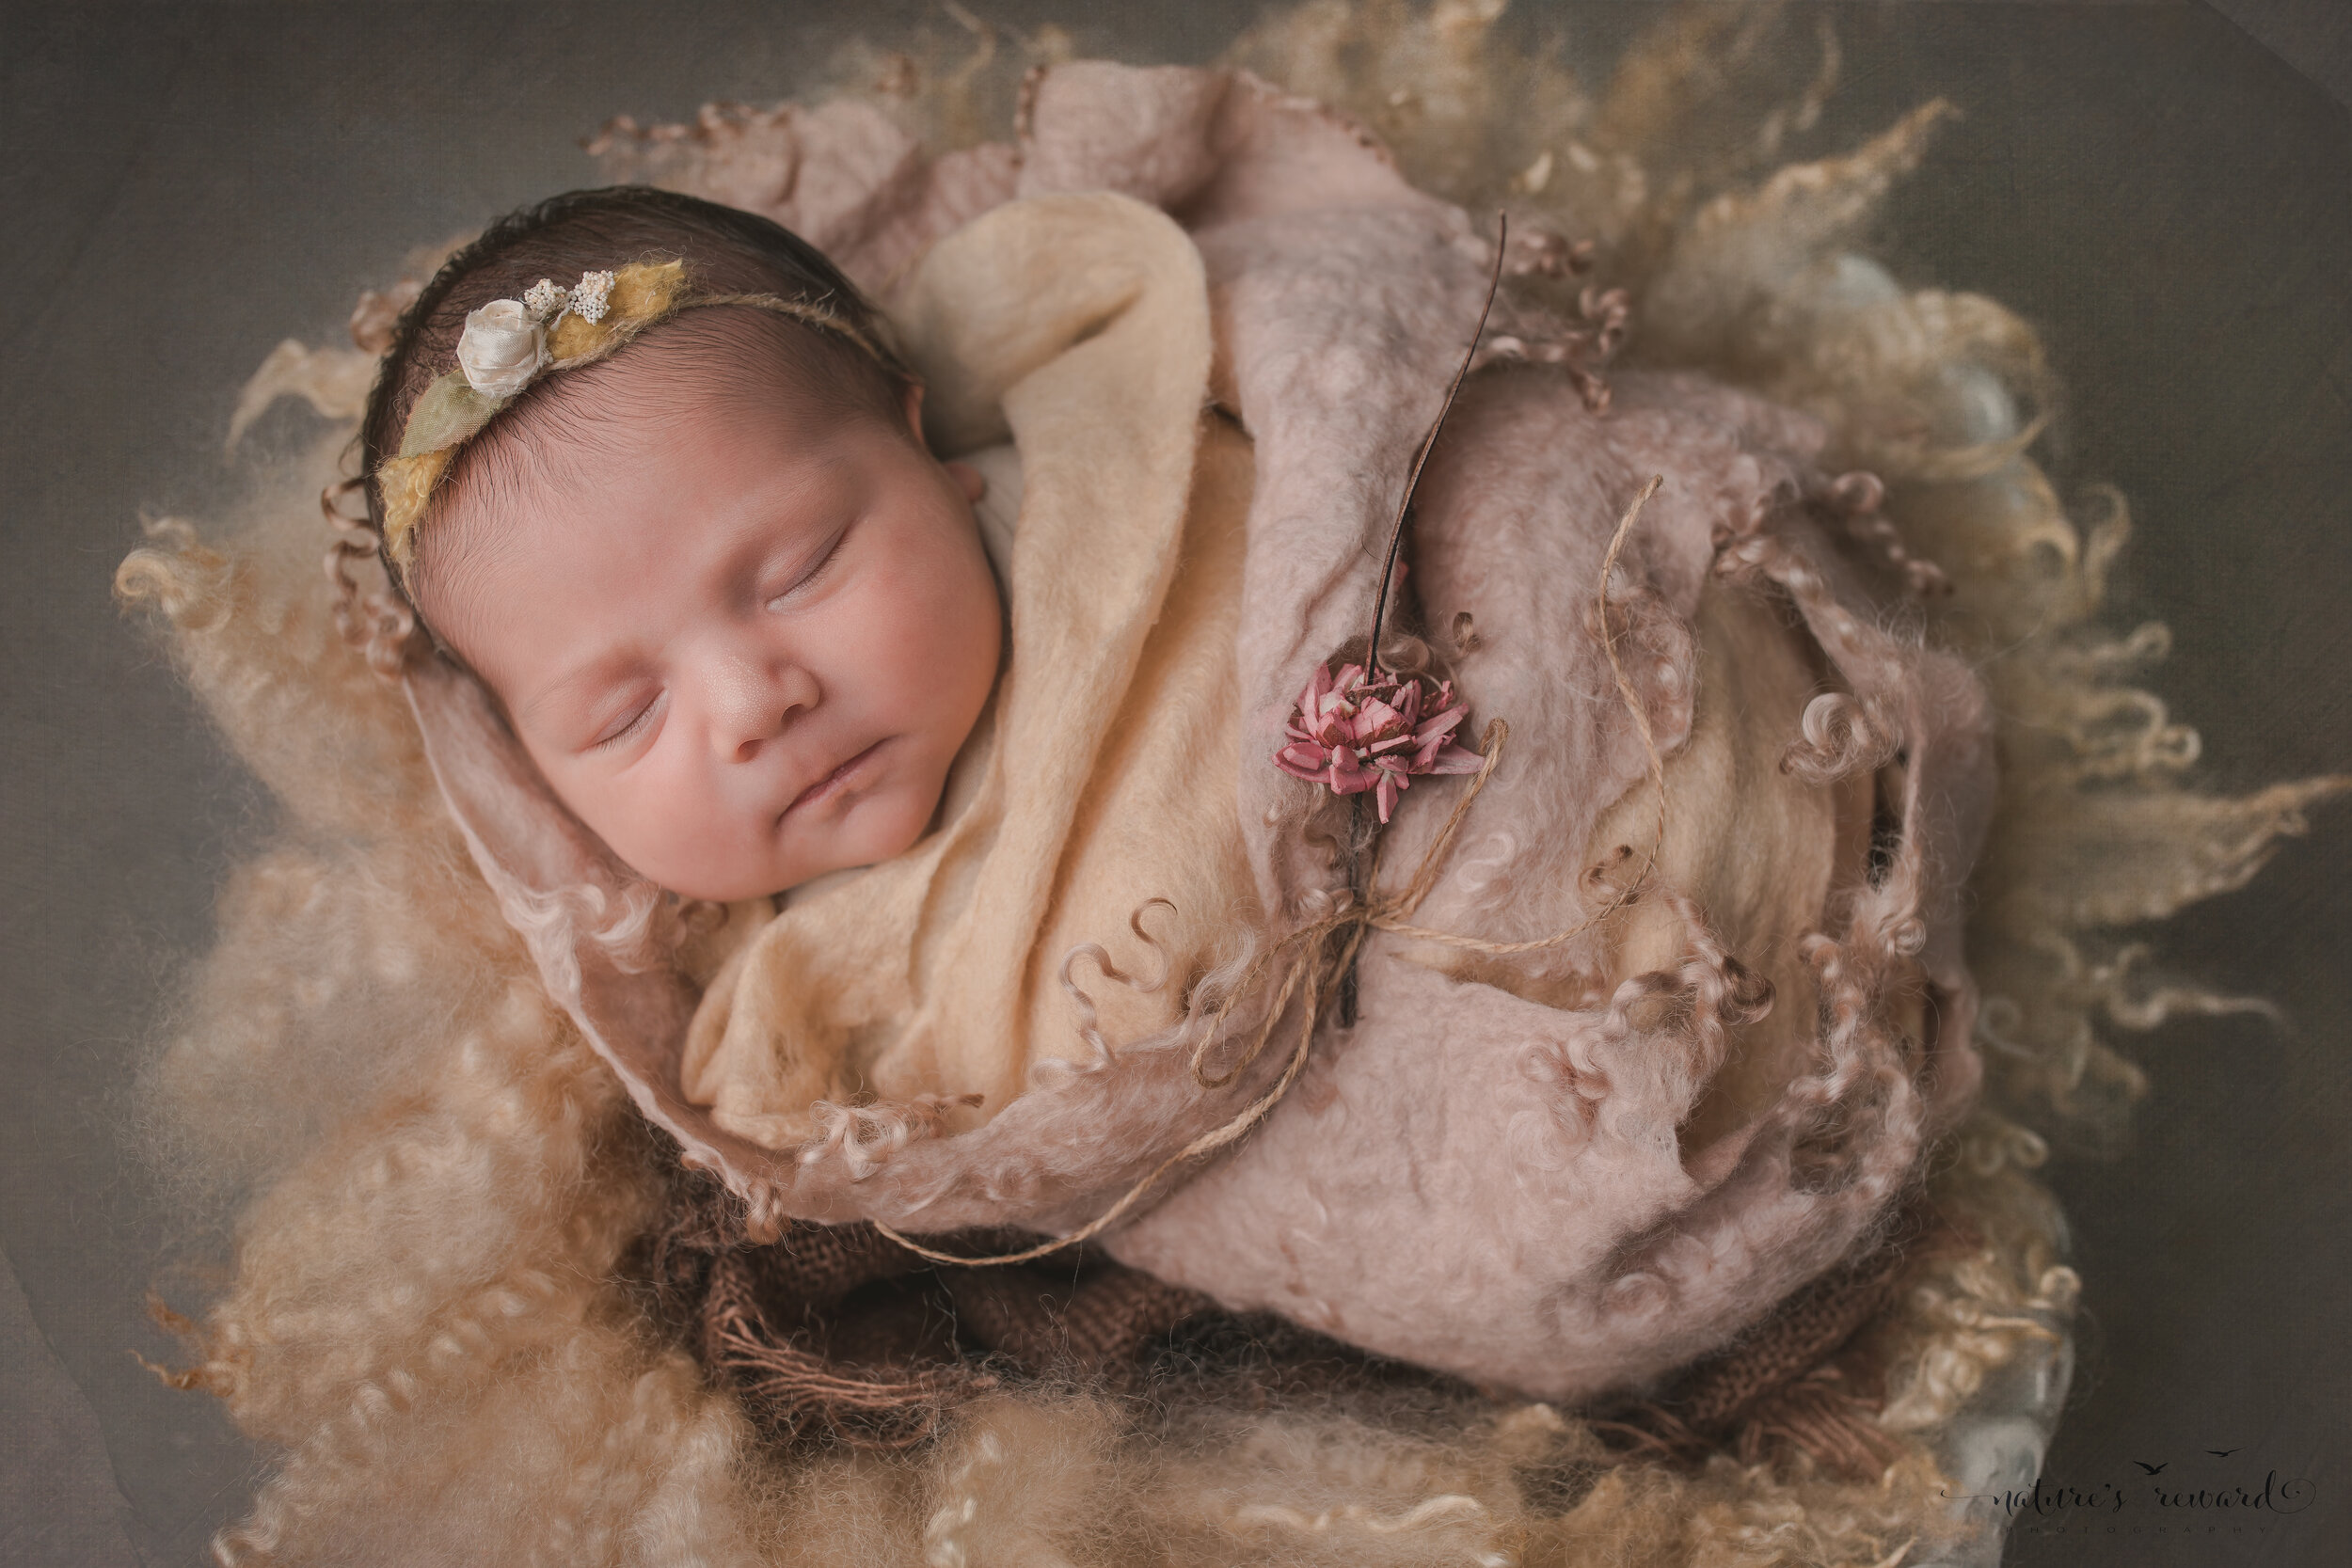 Beautiful newborn baby girl swaddled in lovely layers in this portrait by Nature's Reward Photography